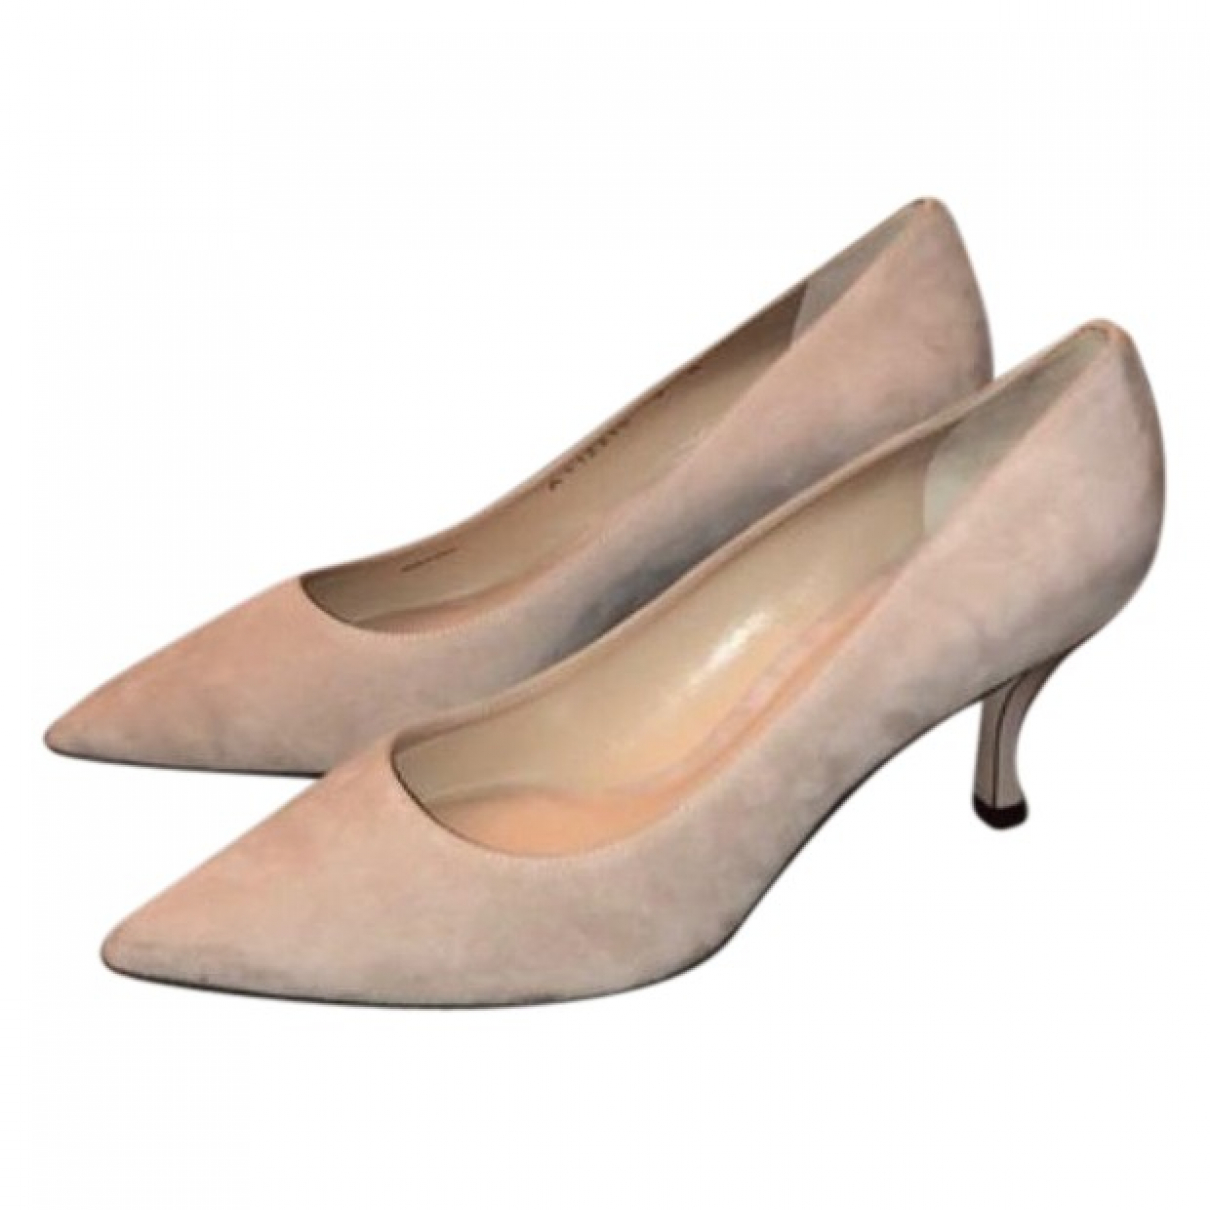 Stuart Weitzman \N Beige Leather Heels for Women 9 US